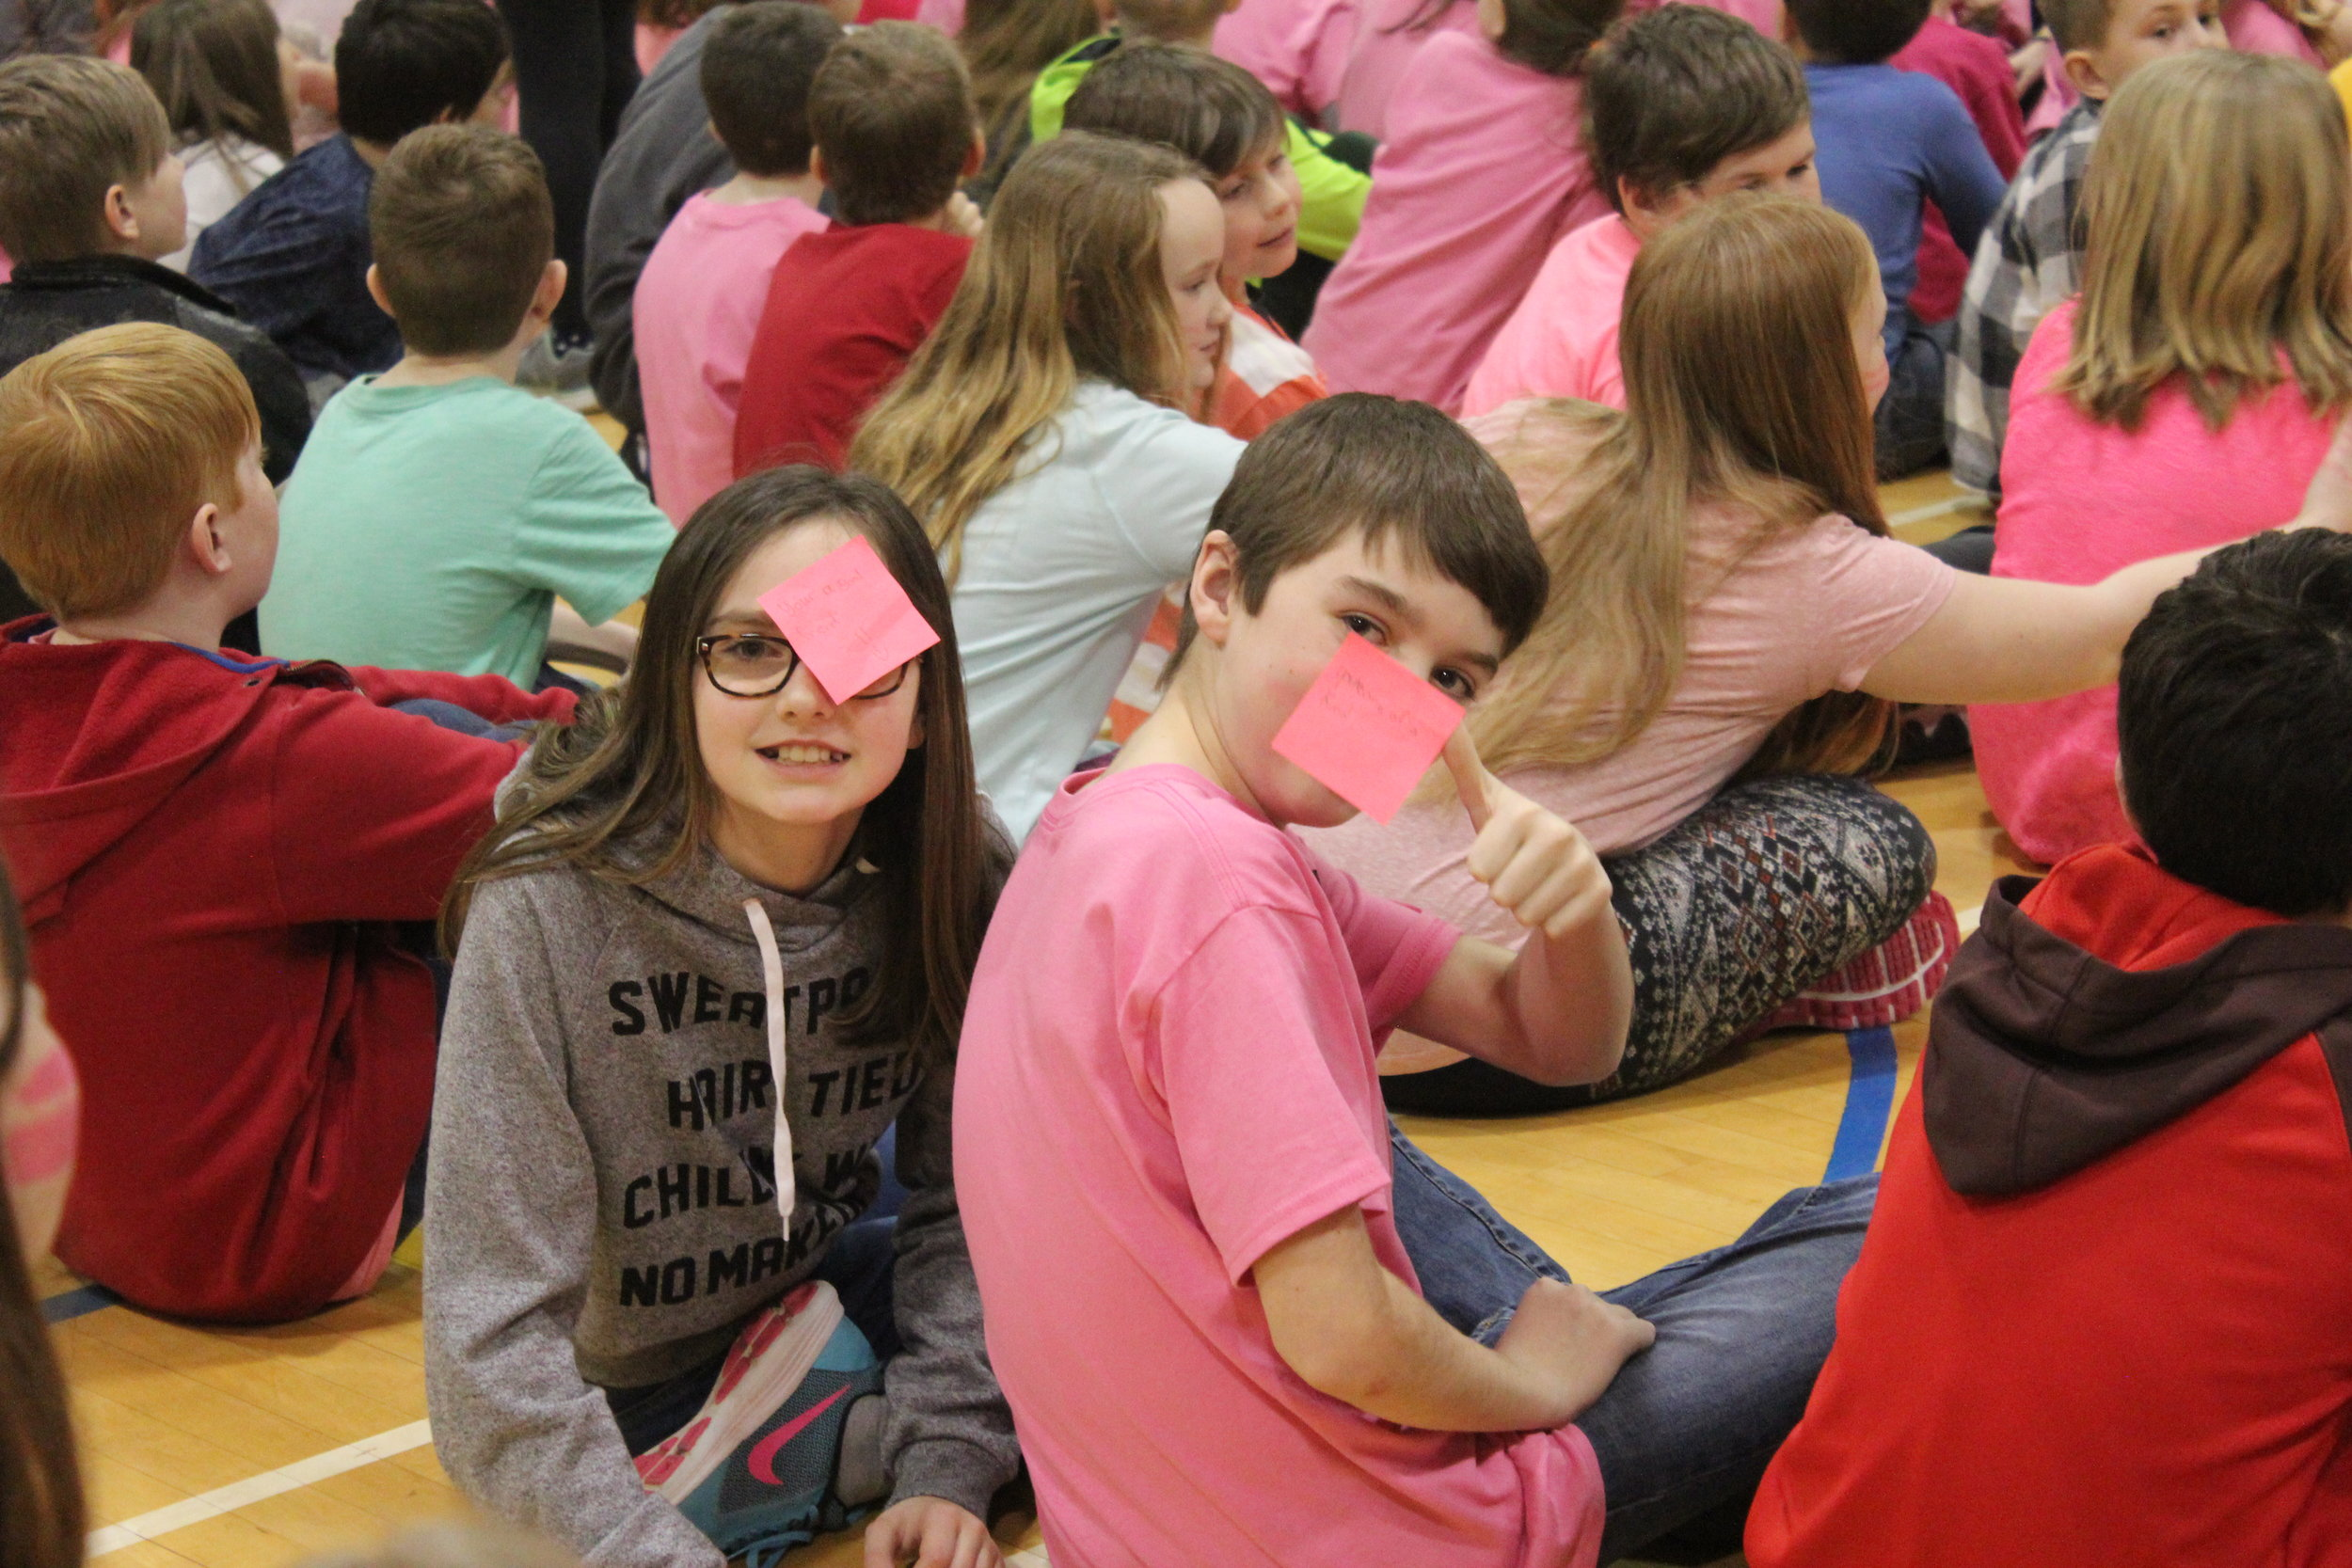 Our Sunshine Club was involved in our Pink Day assembly by writing up Pink Sticky notes and going out into the students sitting, posting positive messages on students to help brighten their day. They wrote things such as Be Yourself! and You are Awesome among many other happy messages with the goal of brightening someone else's day!  Our students are involved with our school community, helping to enhance the lives of our fellow students through simple positive messages that they created and posted on the kids!